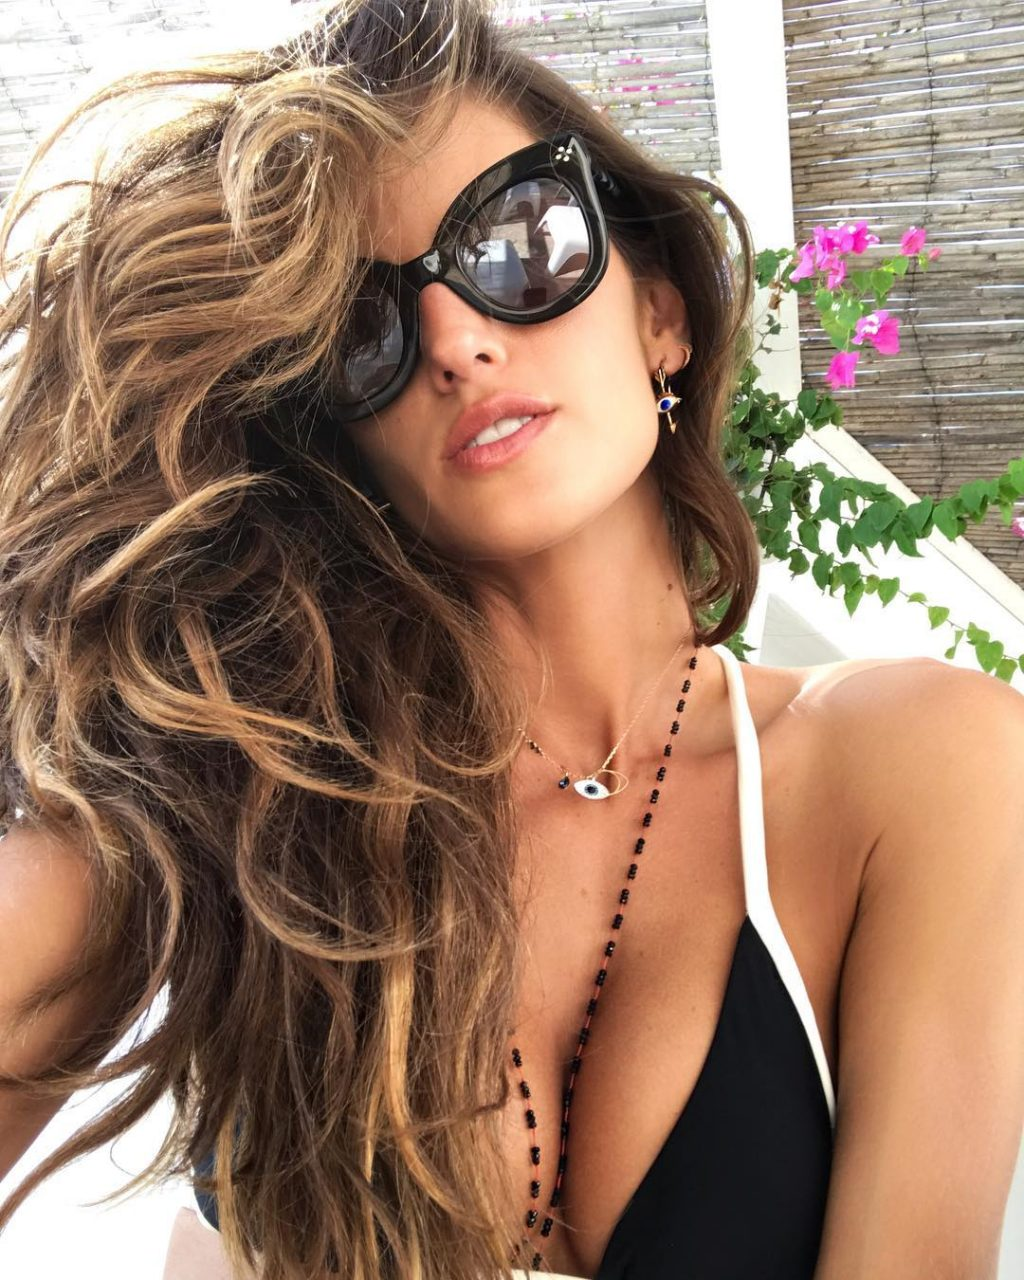 Summer Solutions: How to Care for Sun-Damaged Hair